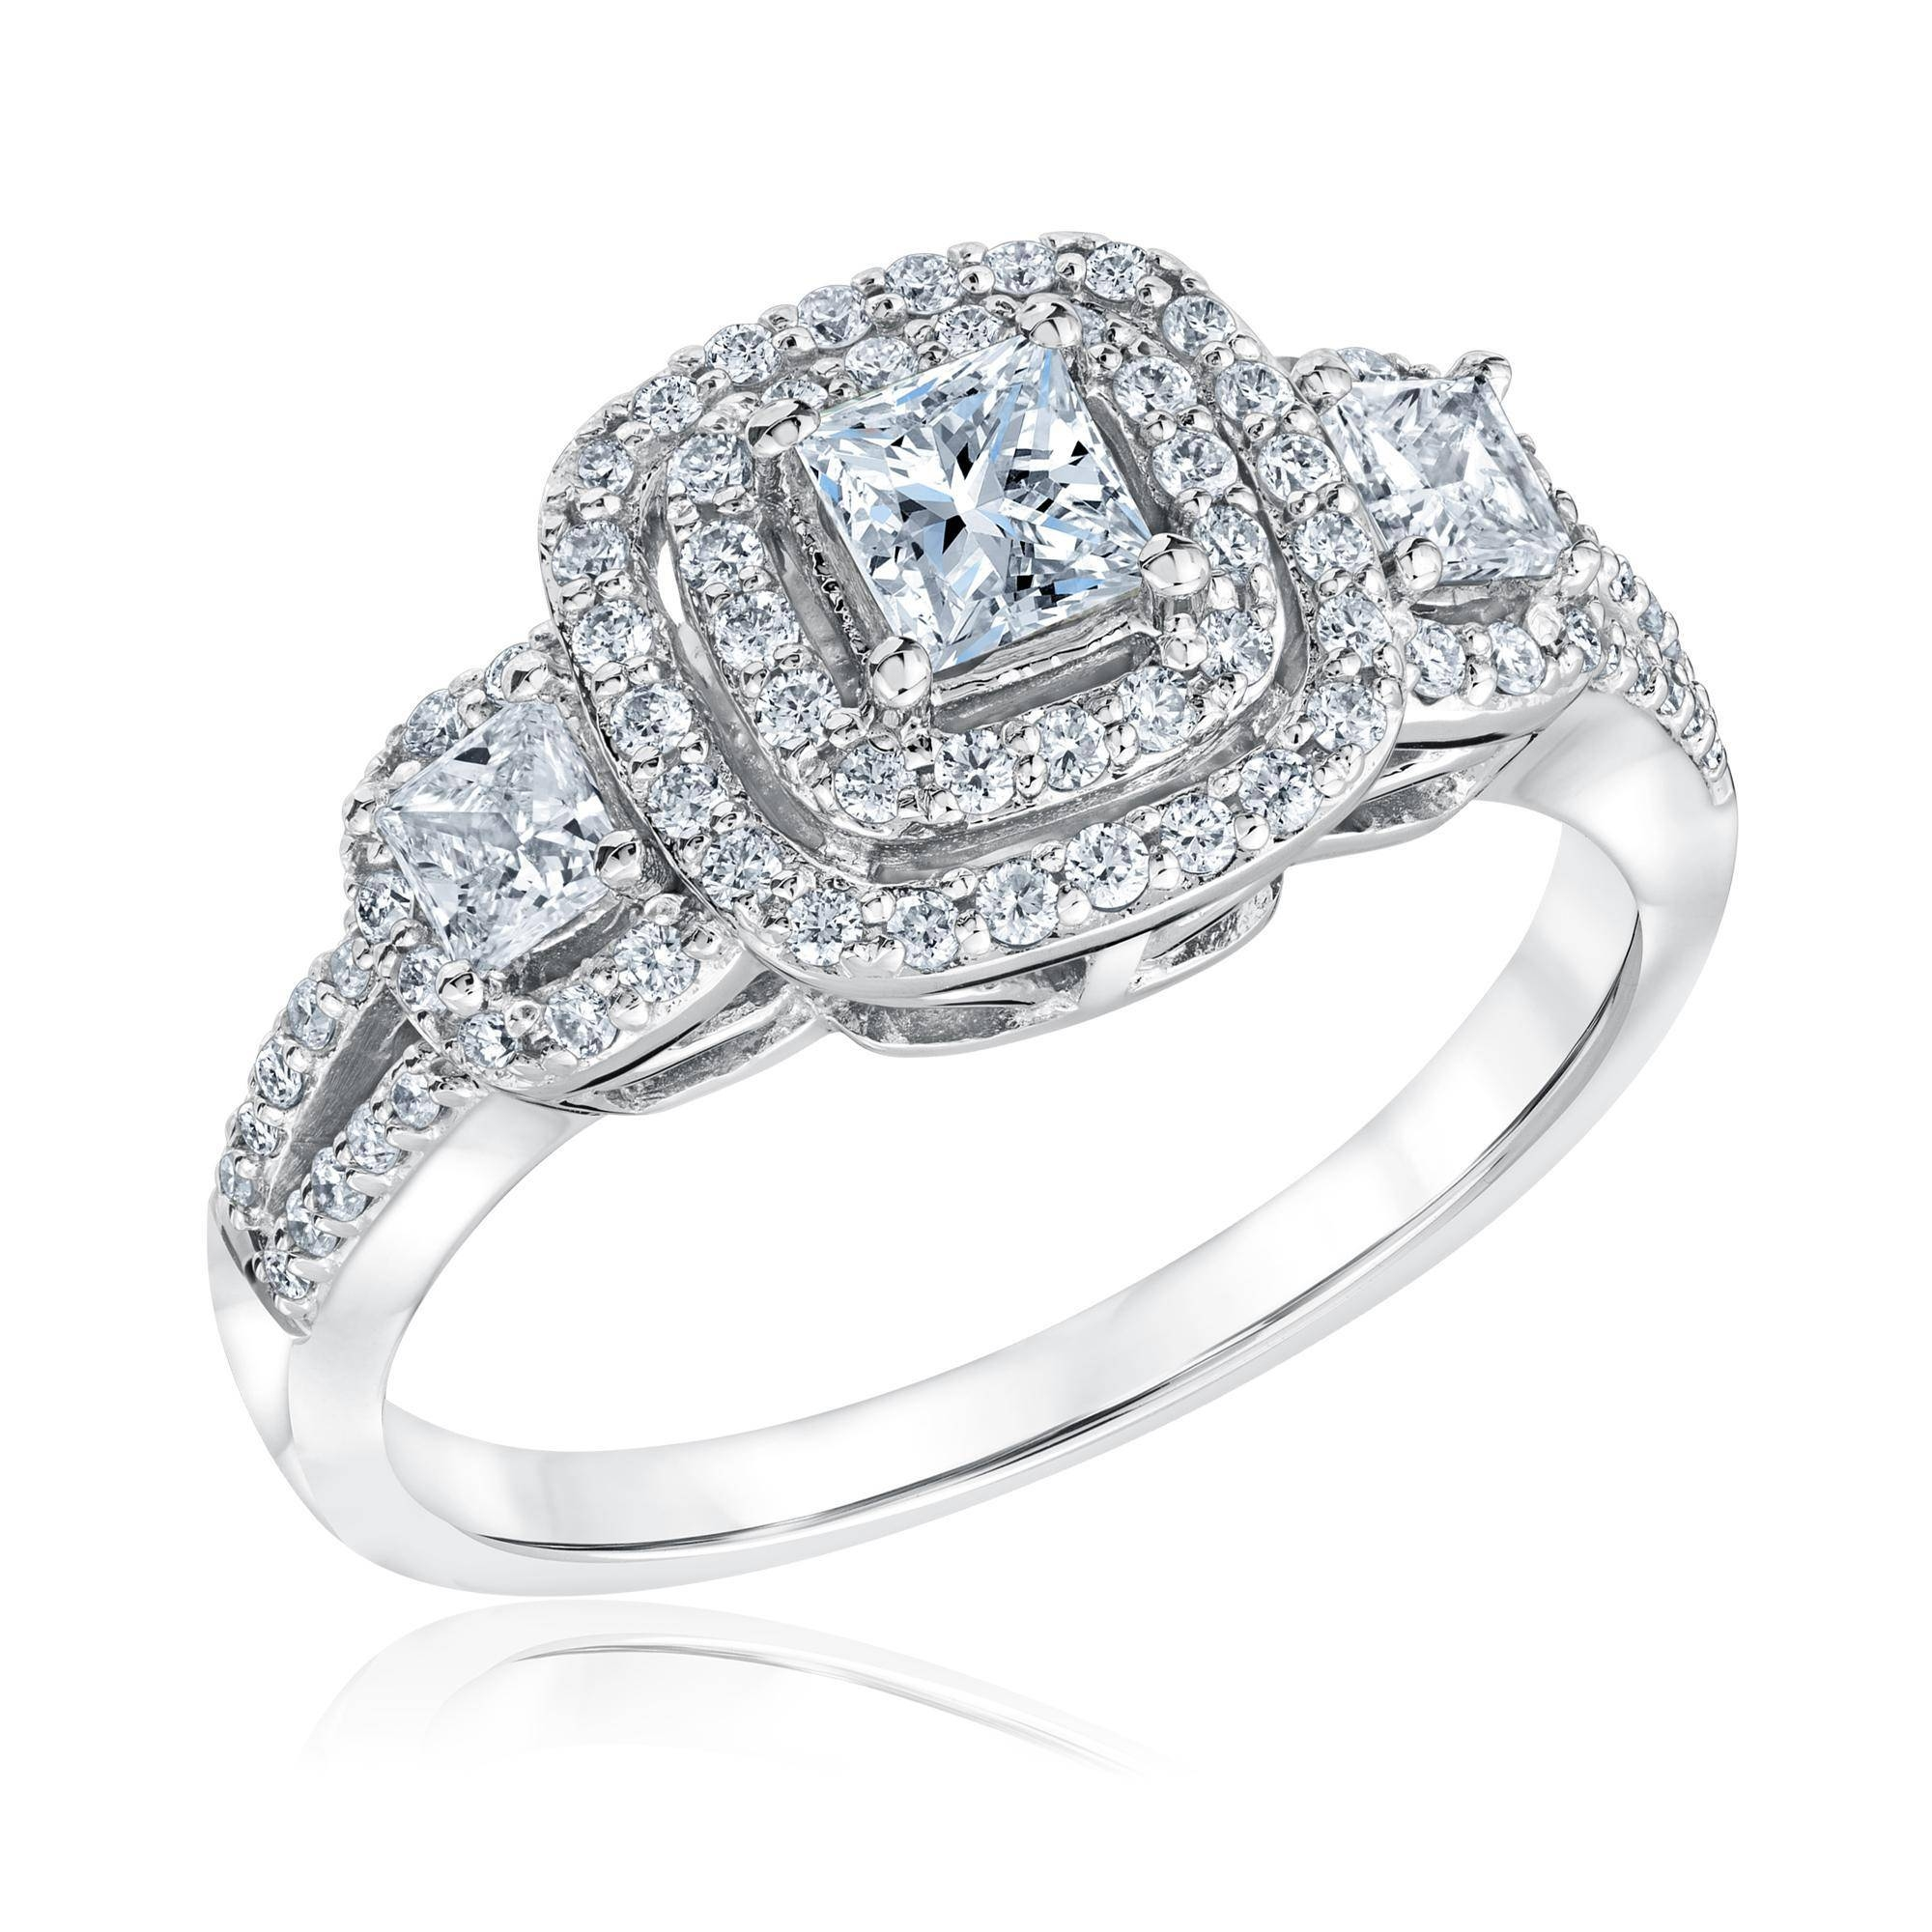 Reeds Jewelers Exclusive Forever Beautiful Princess Three Diamond Throughout Square Double Halo Engagement Rings (View 13 of 15)